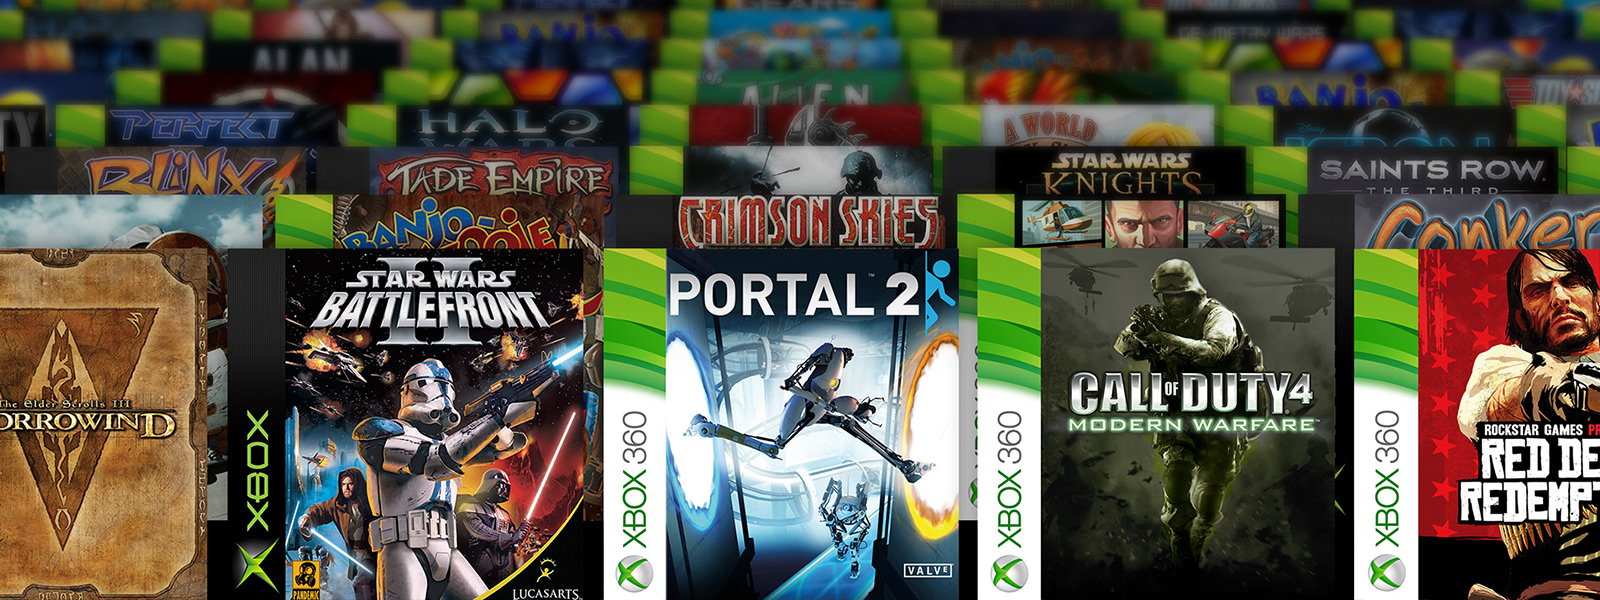 meerdere rijen boxshots van Xbox Backward Compatible-games